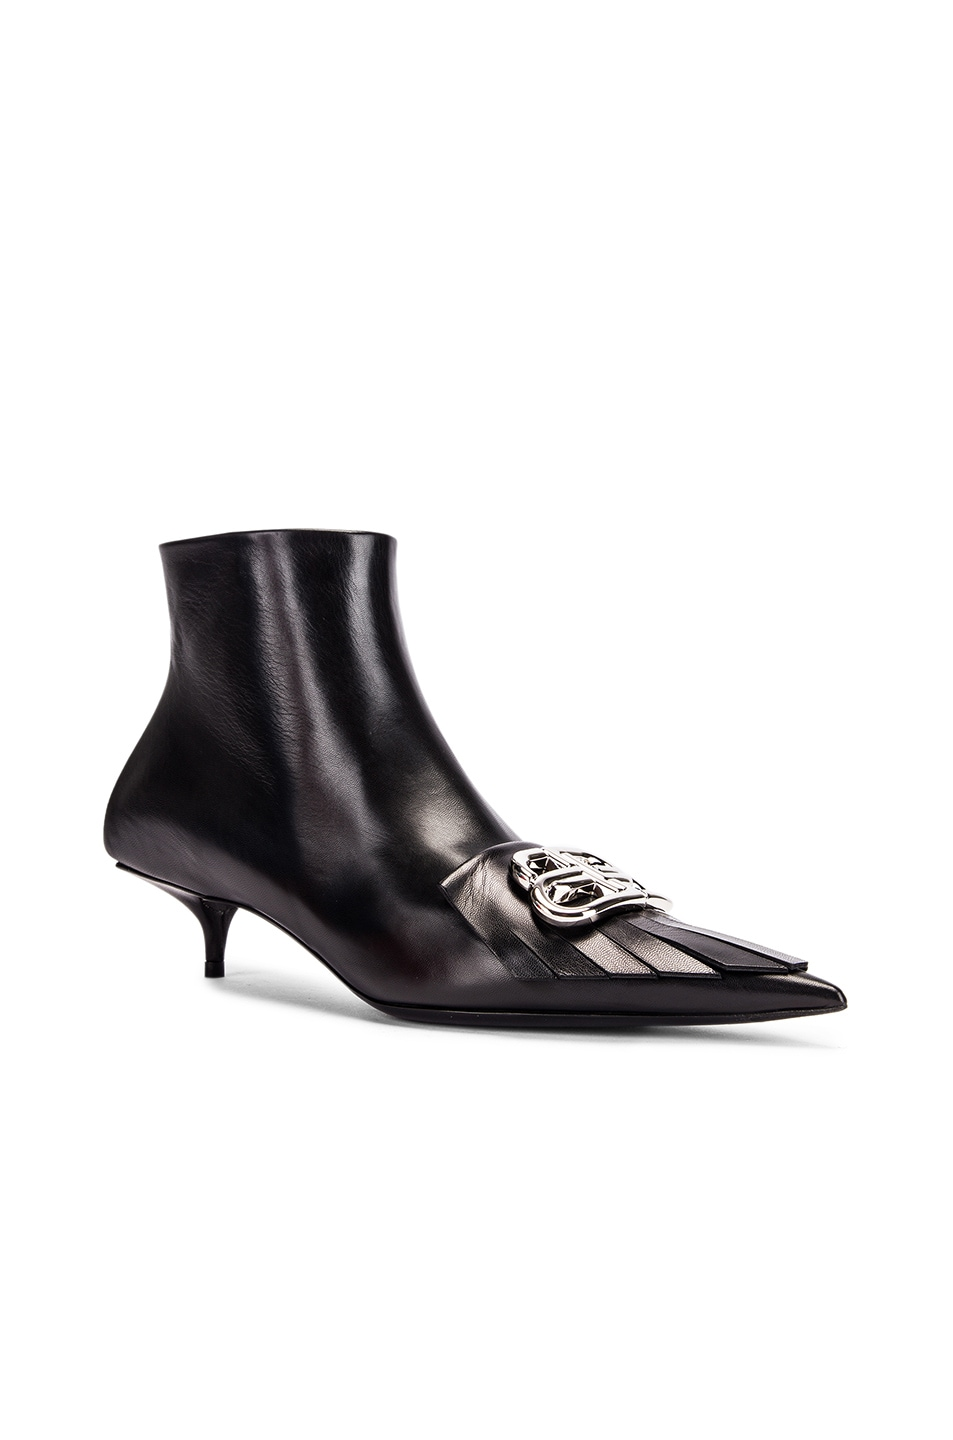 Image 3 of Balenciaga Fringe Knife Booties in Black & Silver